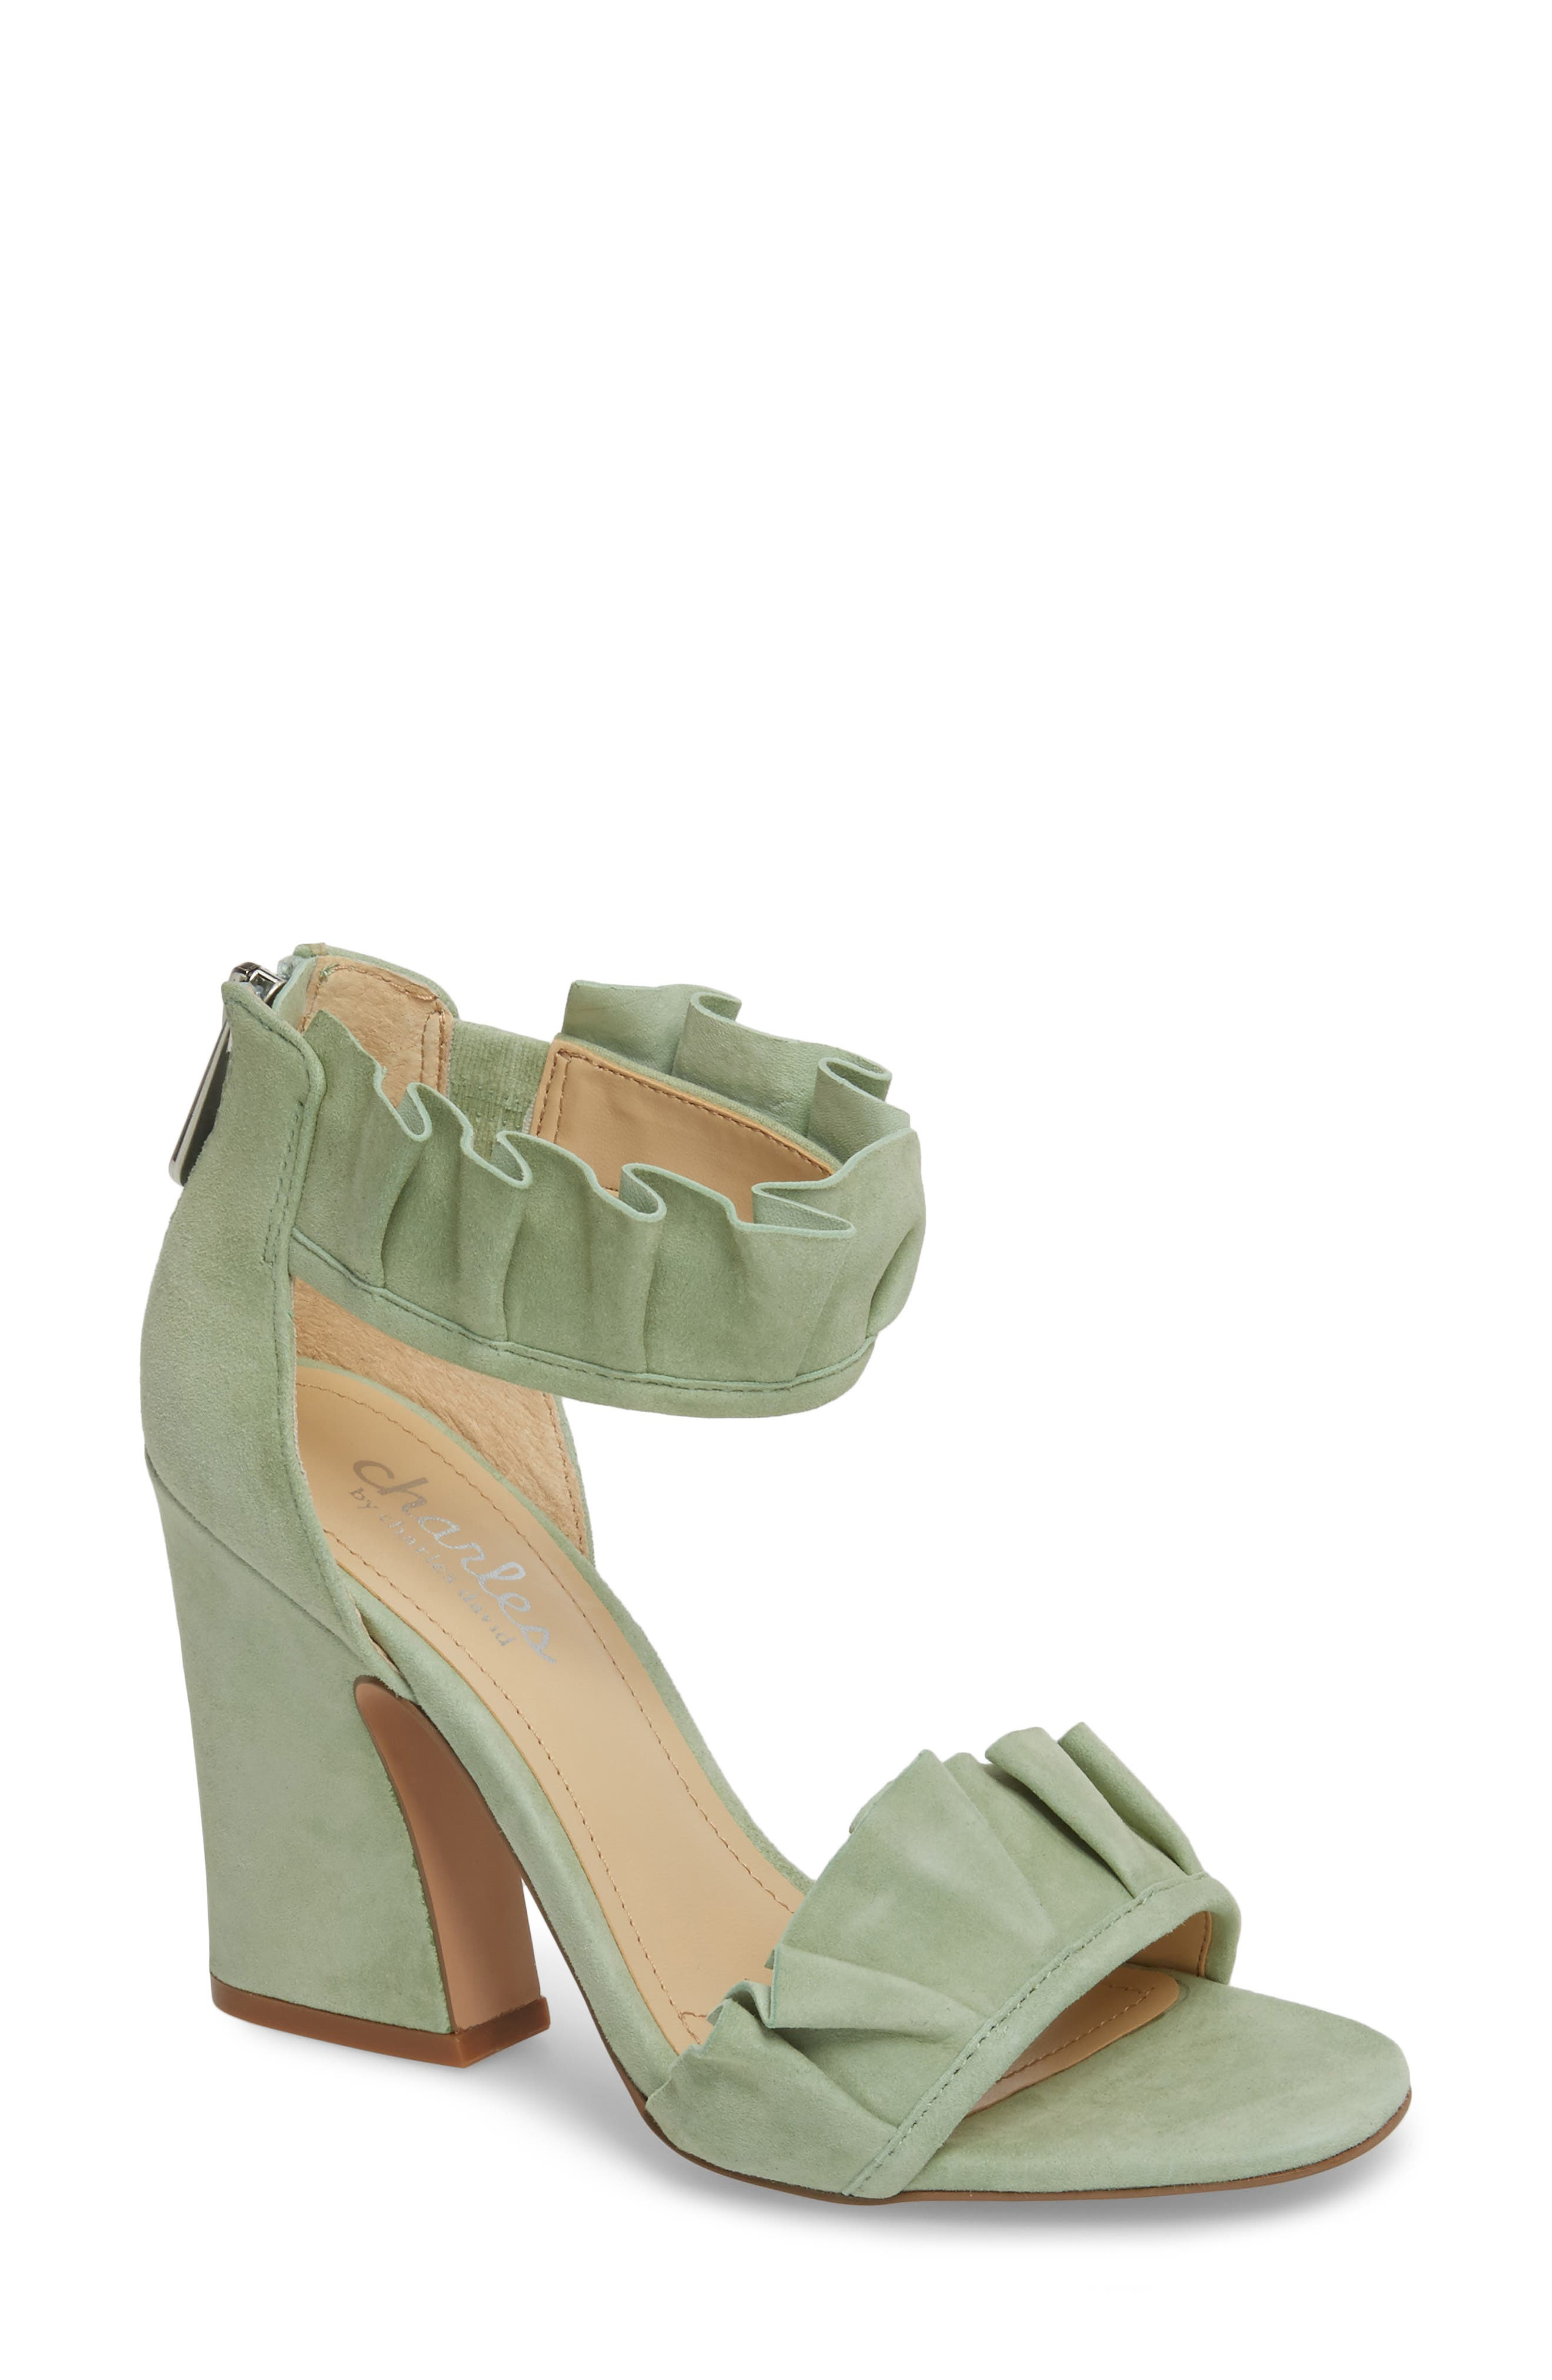 Haley Ruffle Sandal,                             Main thumbnail 1, color,                             MINT SUEDE